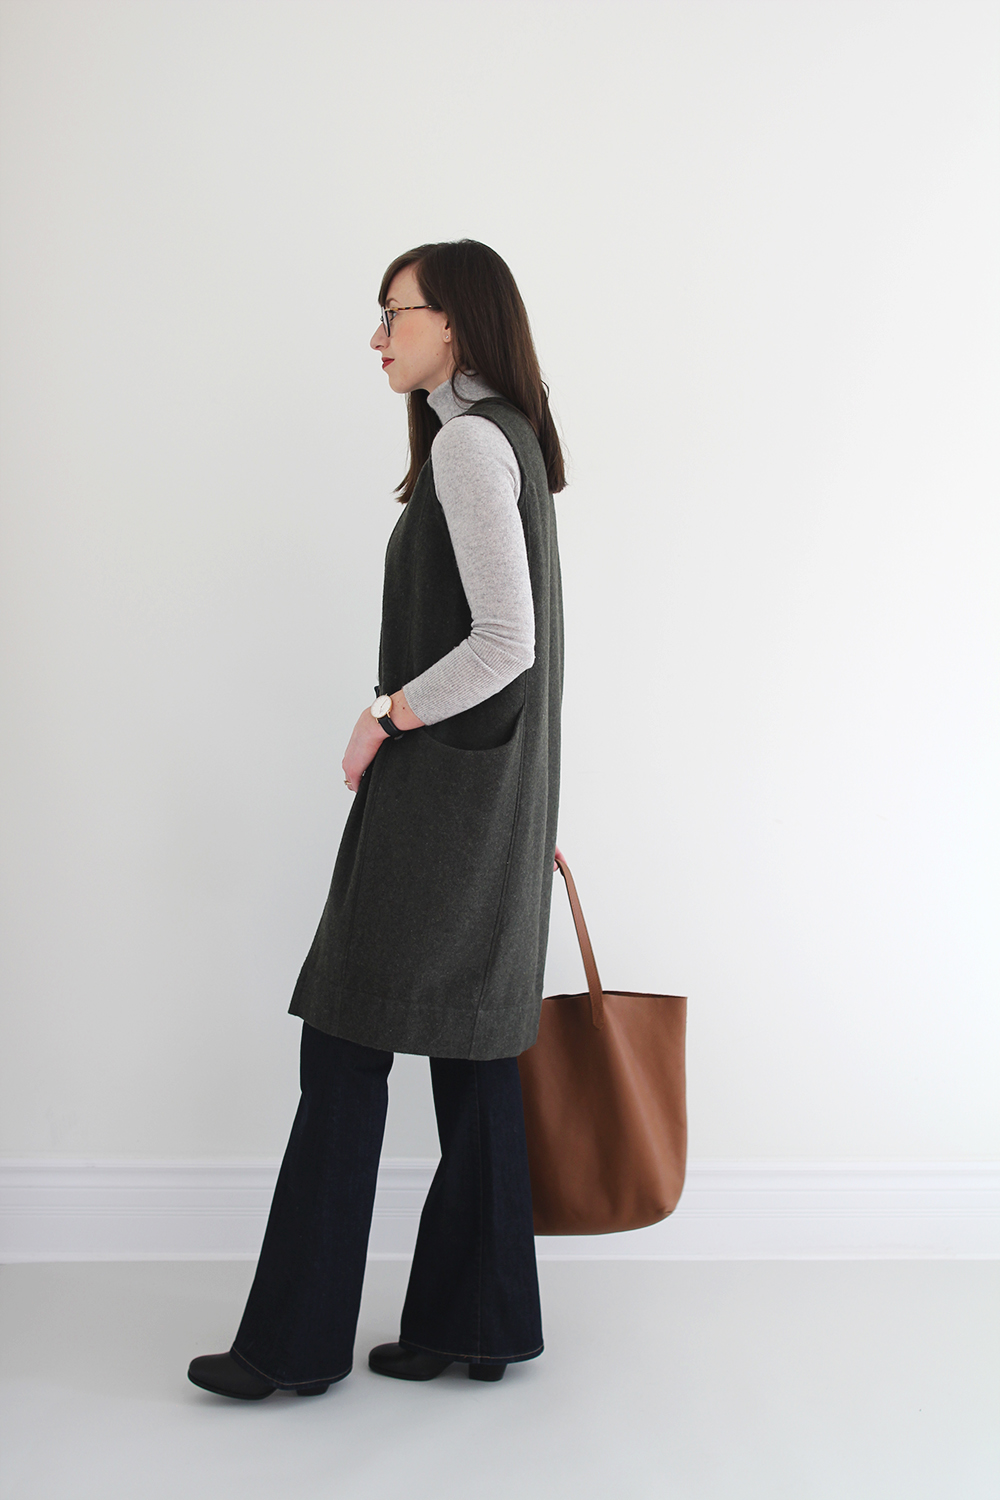 Style Bee - 1 Formula 3 Ways - March